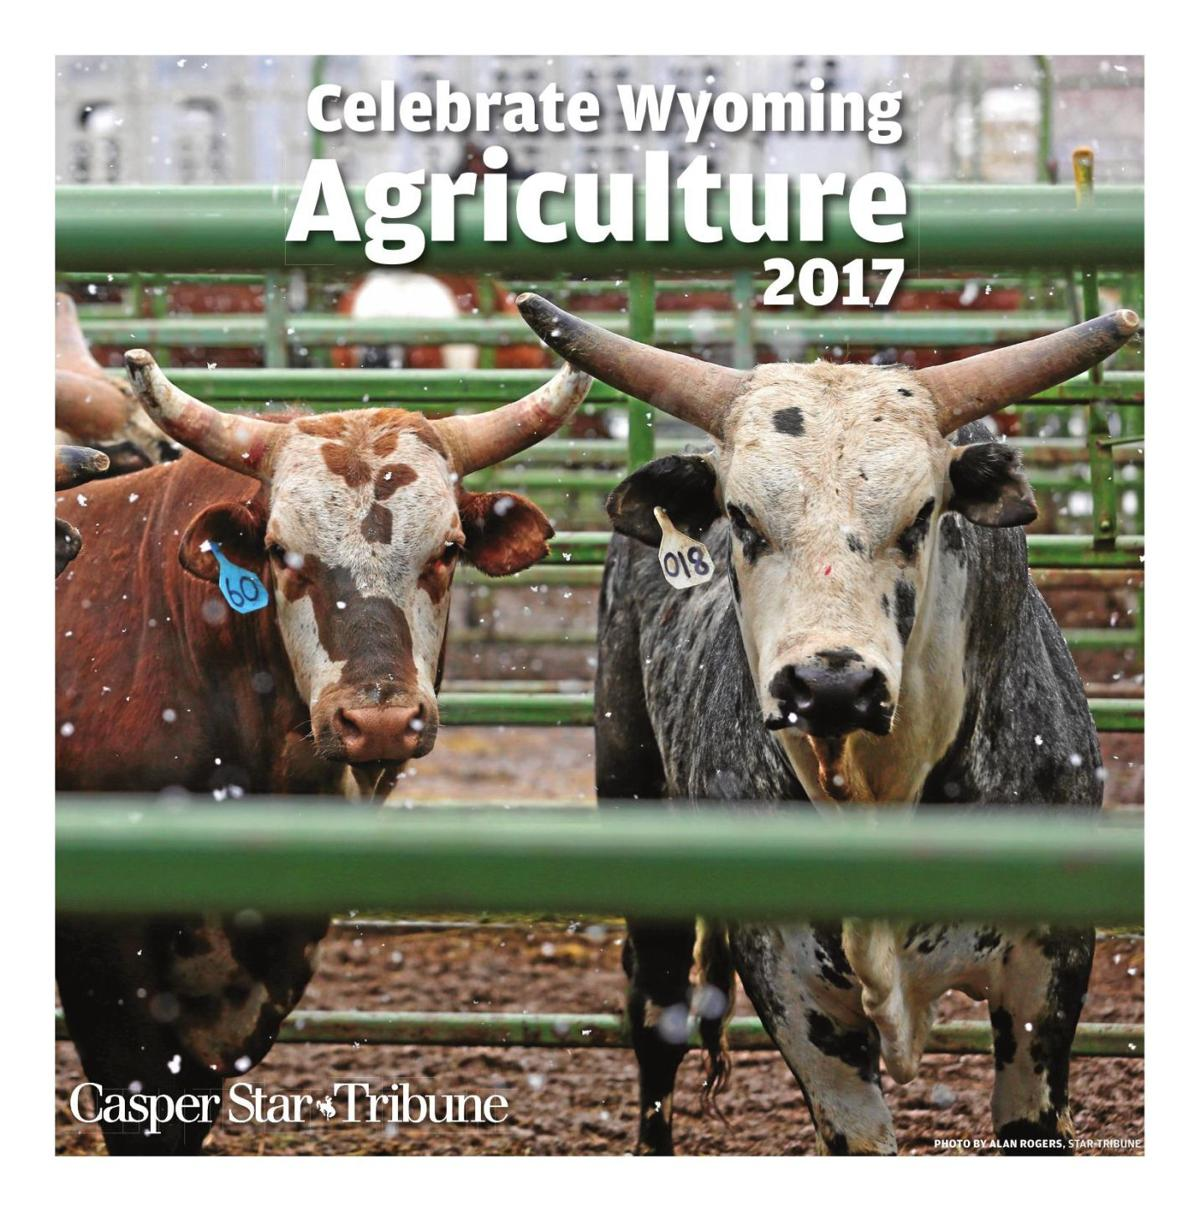 Celebrate Wyoming Agriculture 2017